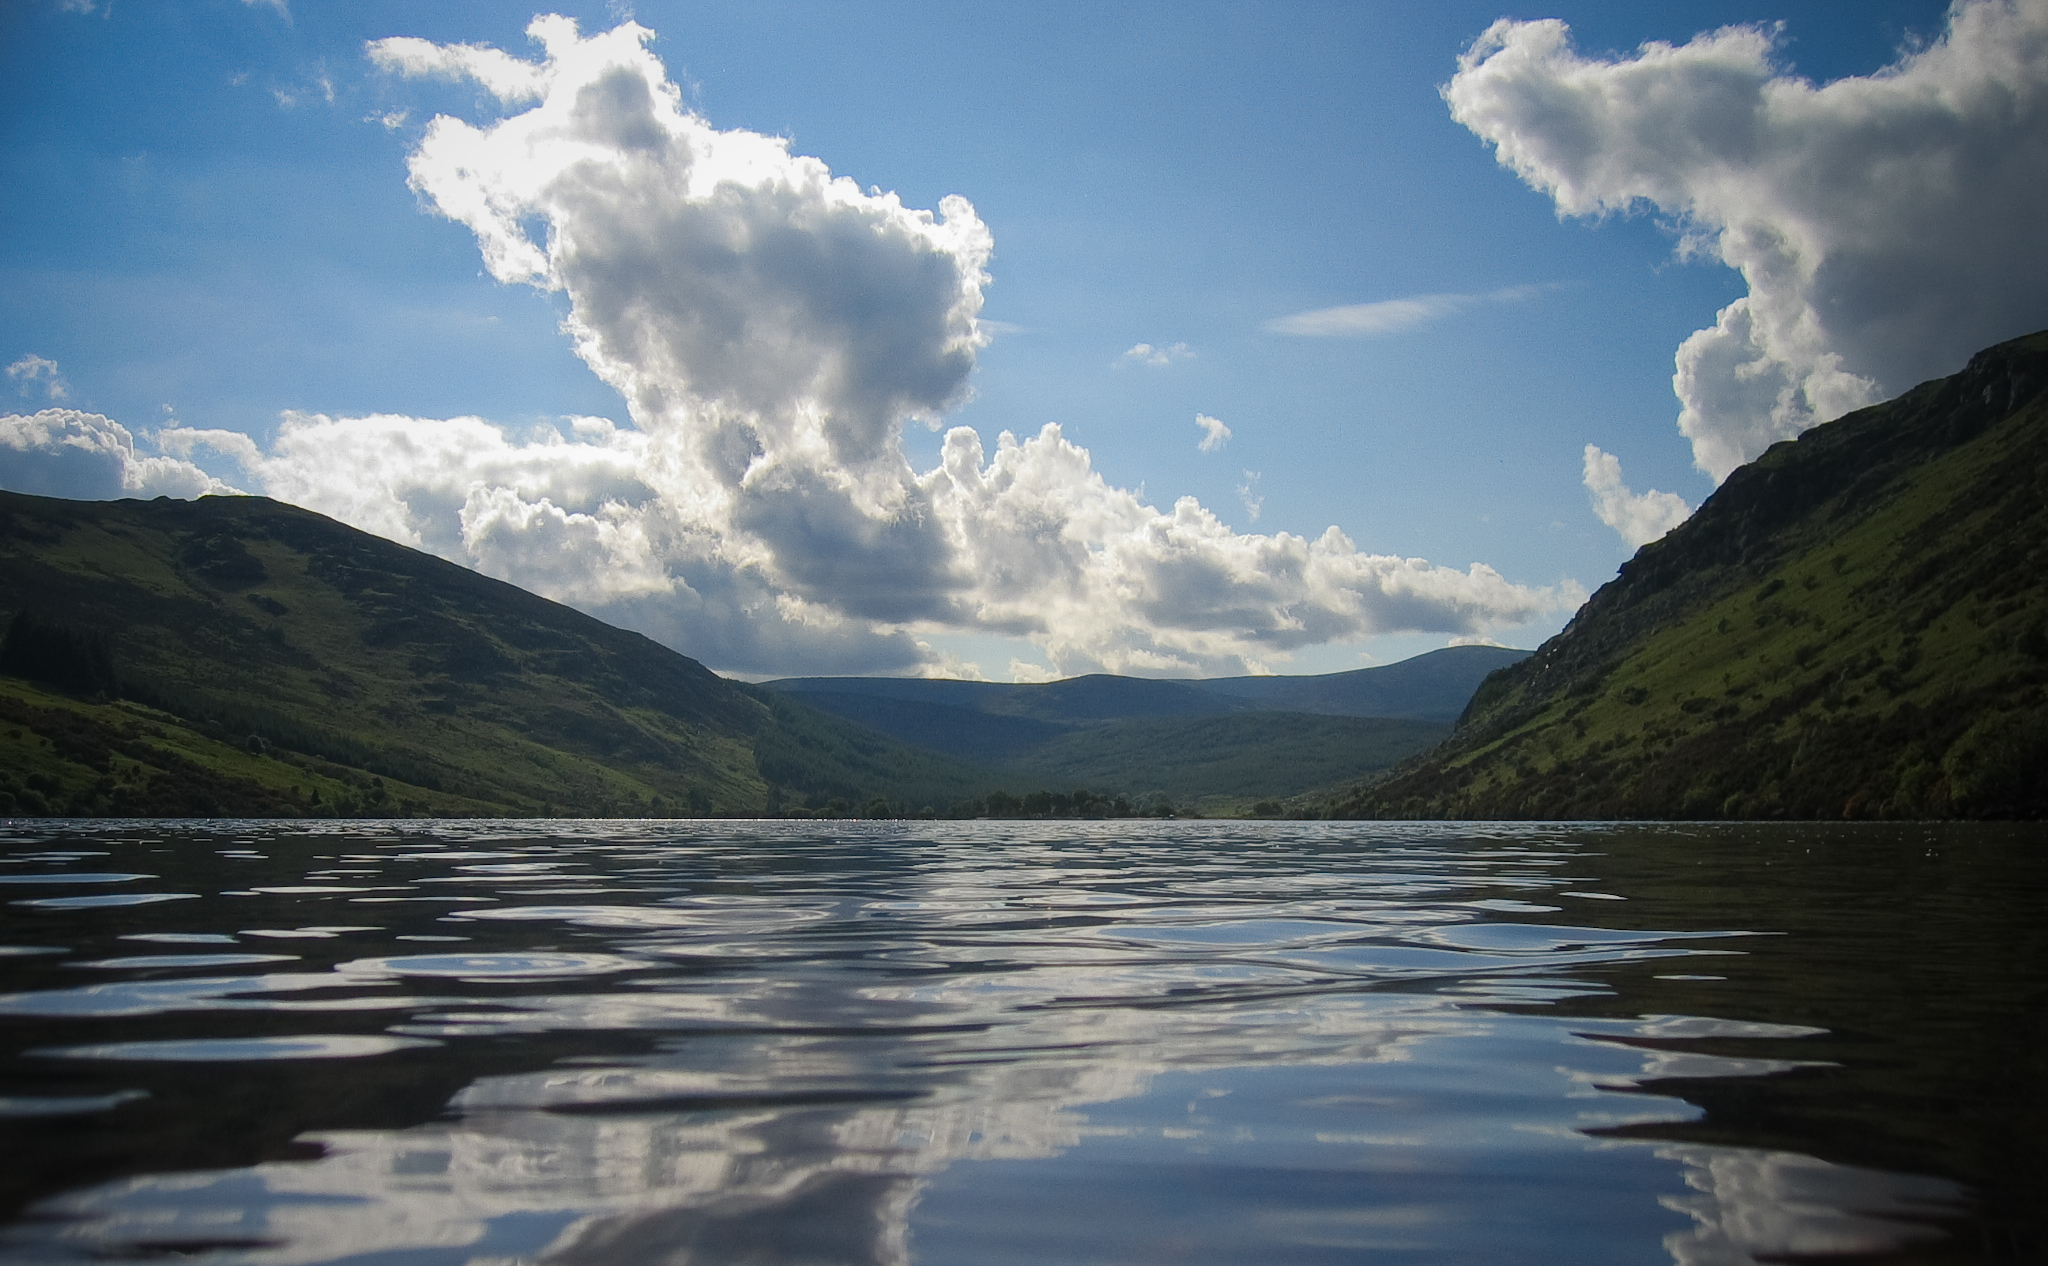 File:Lough Dan reflections (27765469).jpg